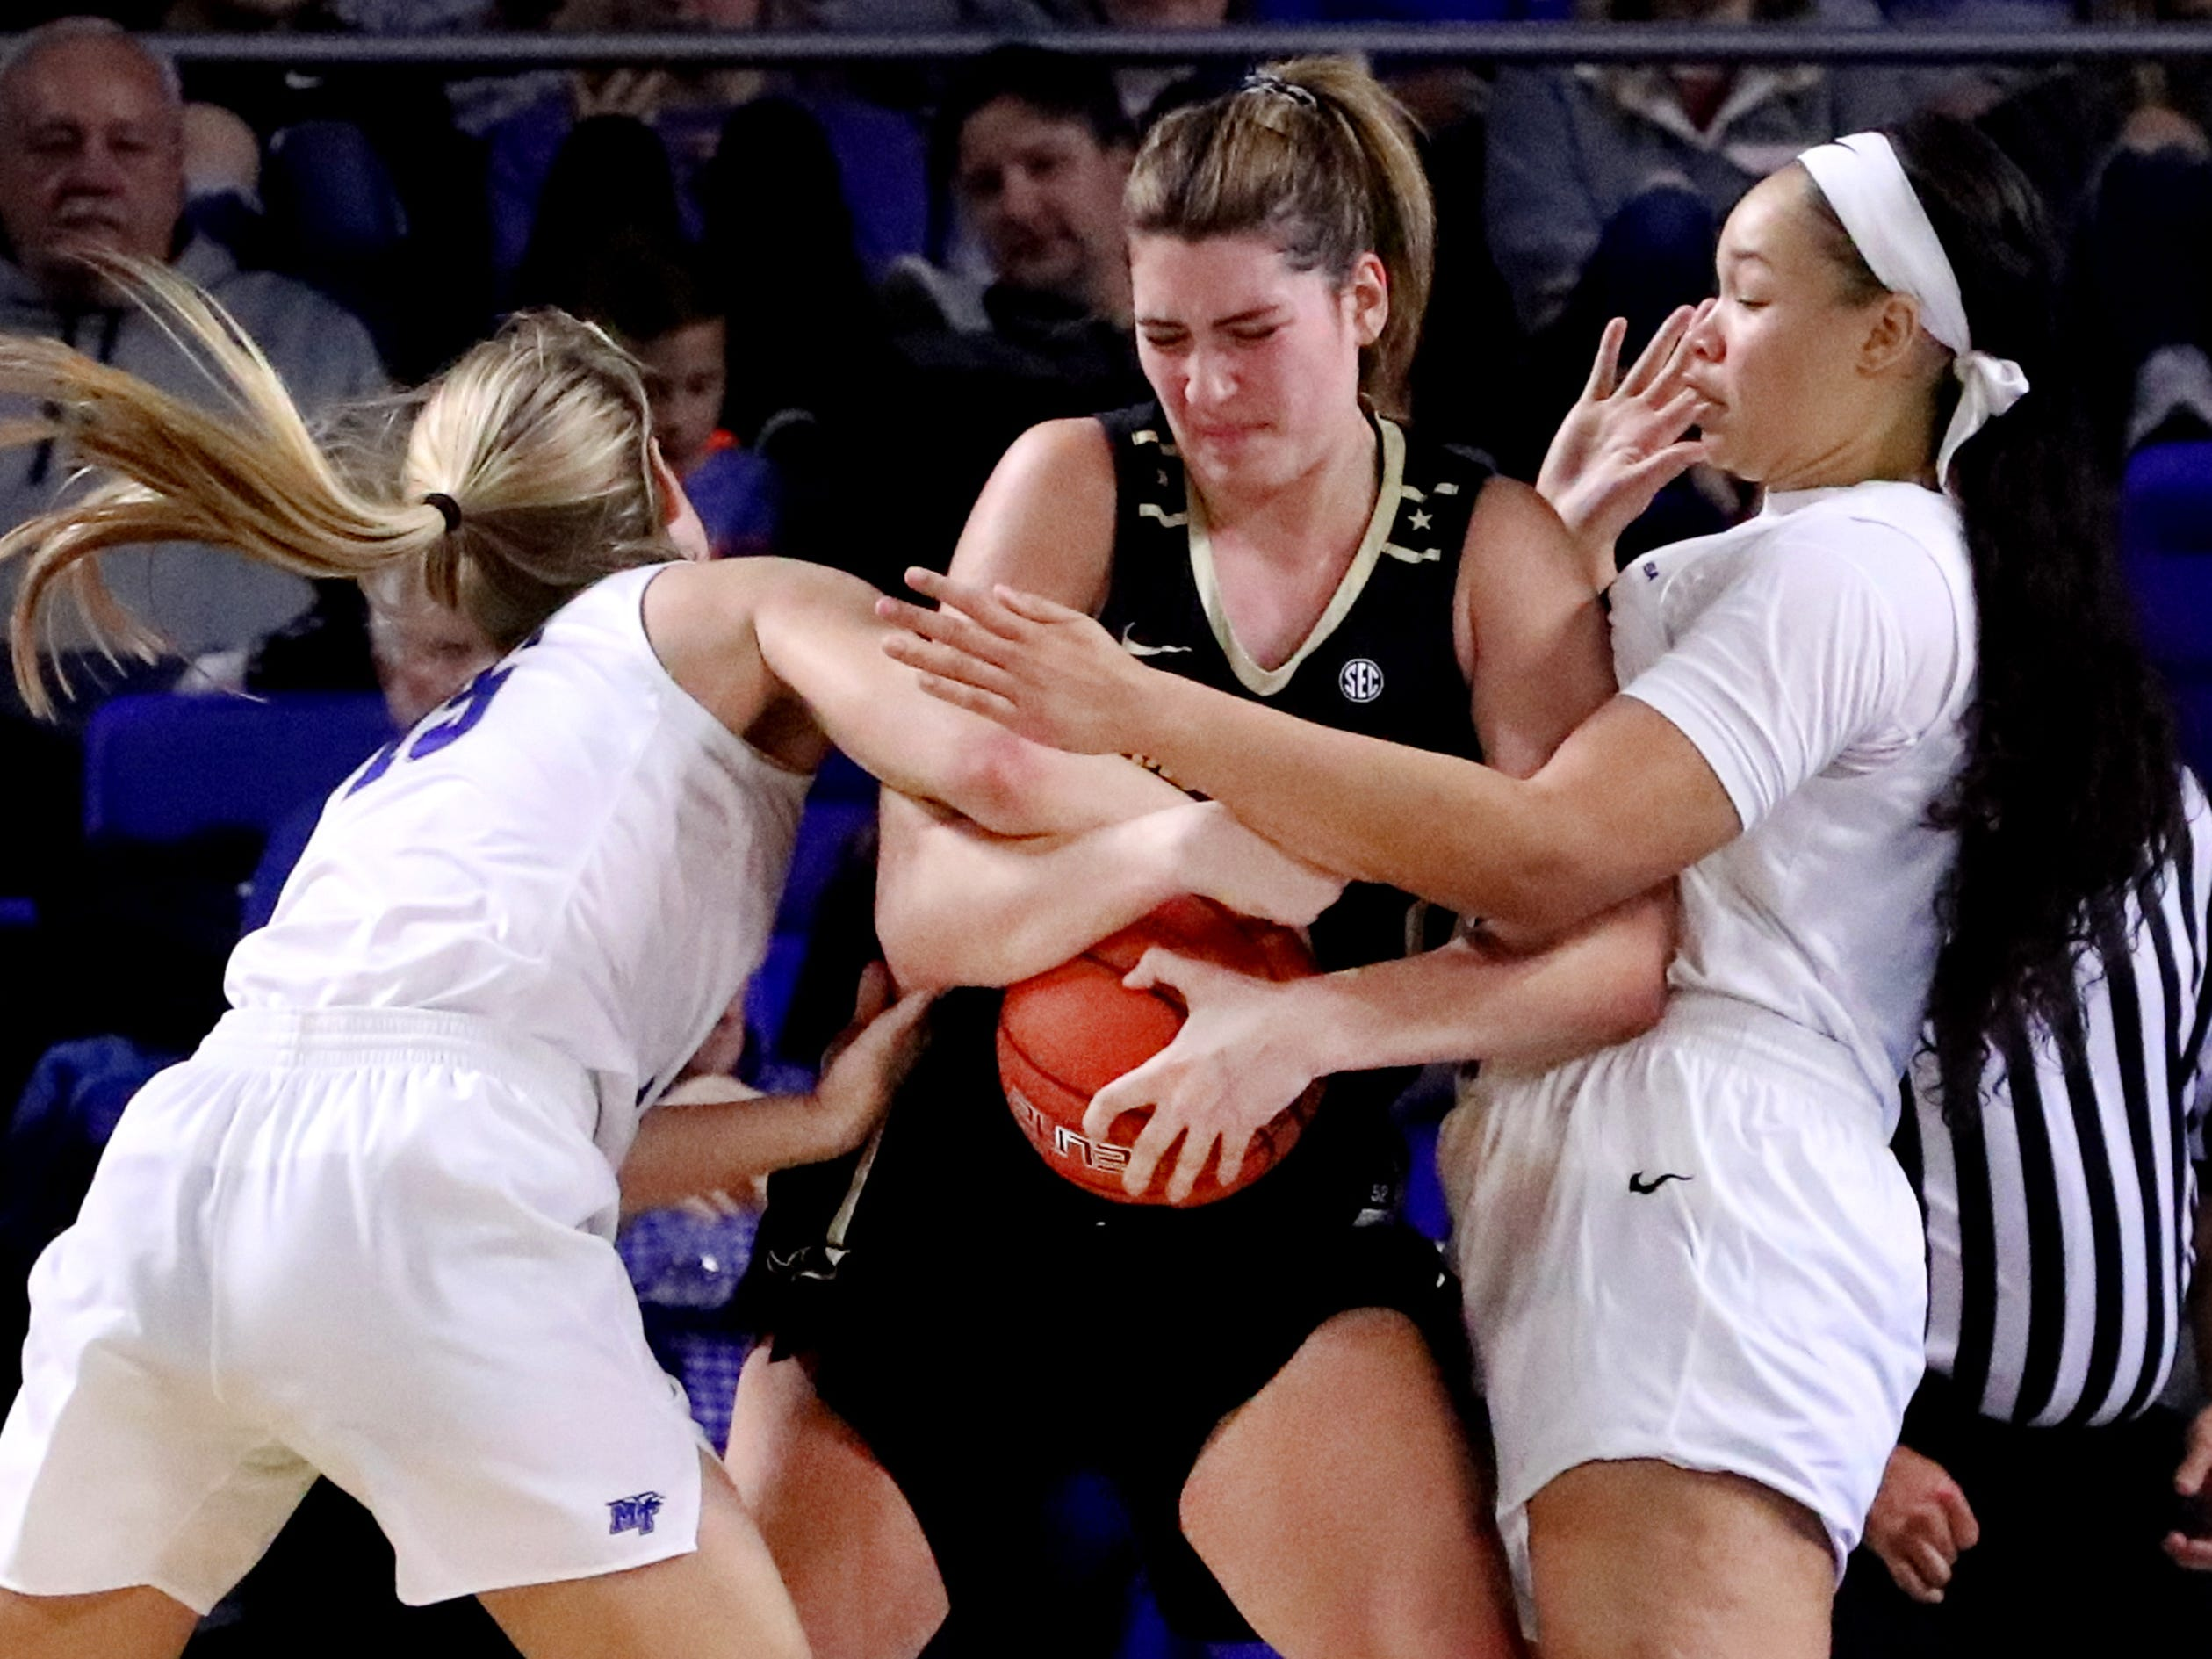 MTSU's Anna Jones (15) tries to steal the ball from Vanderbilt's Mariell Fasoula (34) as MTSU's Alex Johnson's (00) guards Fasoula during MTSU women's home opening game at MTSU on Friday, Nov. 8, 2018.